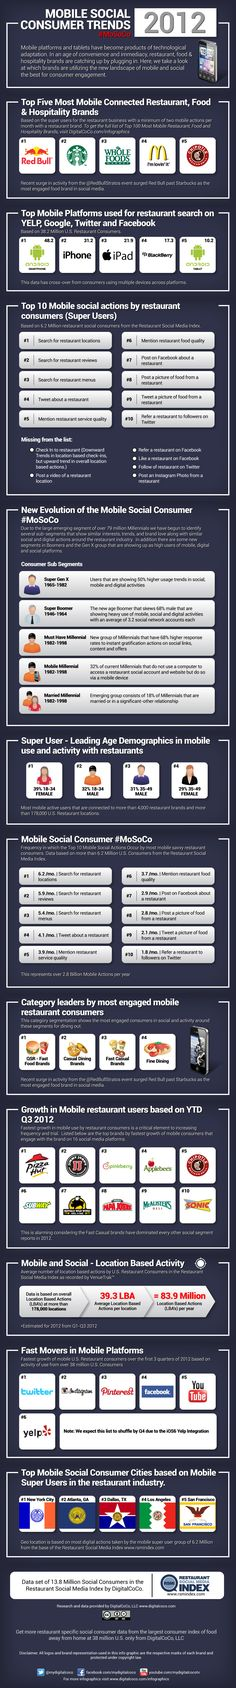 #Mobile #Social #Consumer Trends of 2012